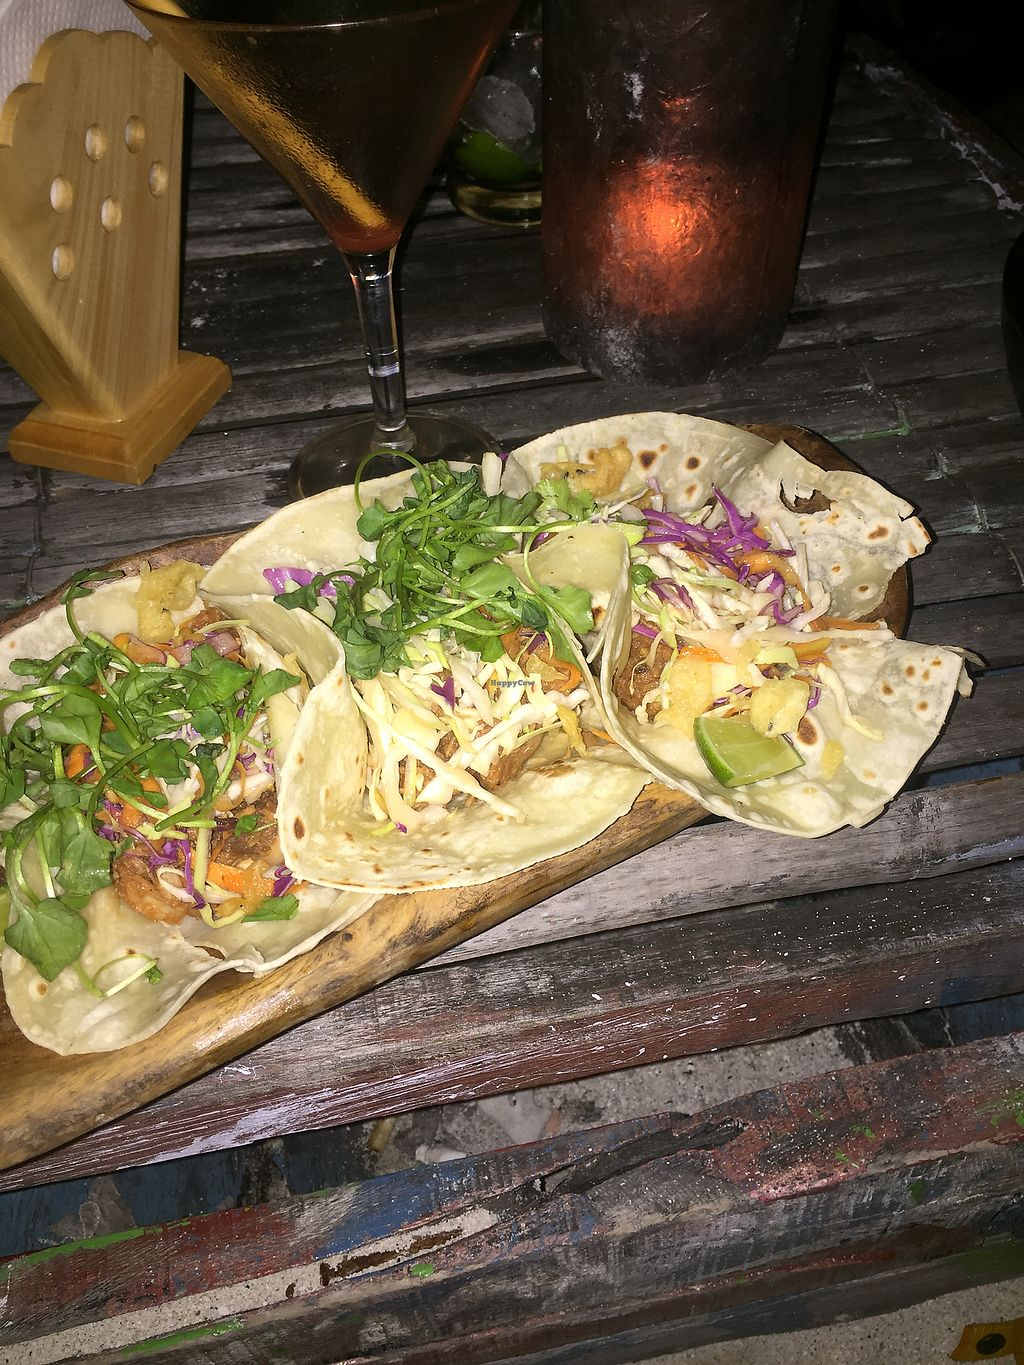 """Photo of Mowie's   by <a href=""""/members/profile/meislnicoline"""">meislnicoline</a> <br/>Veganized tacos <br/> April 10, 2018  - <a href='/contact/abuse/image/76717/383162'>Report</a>"""